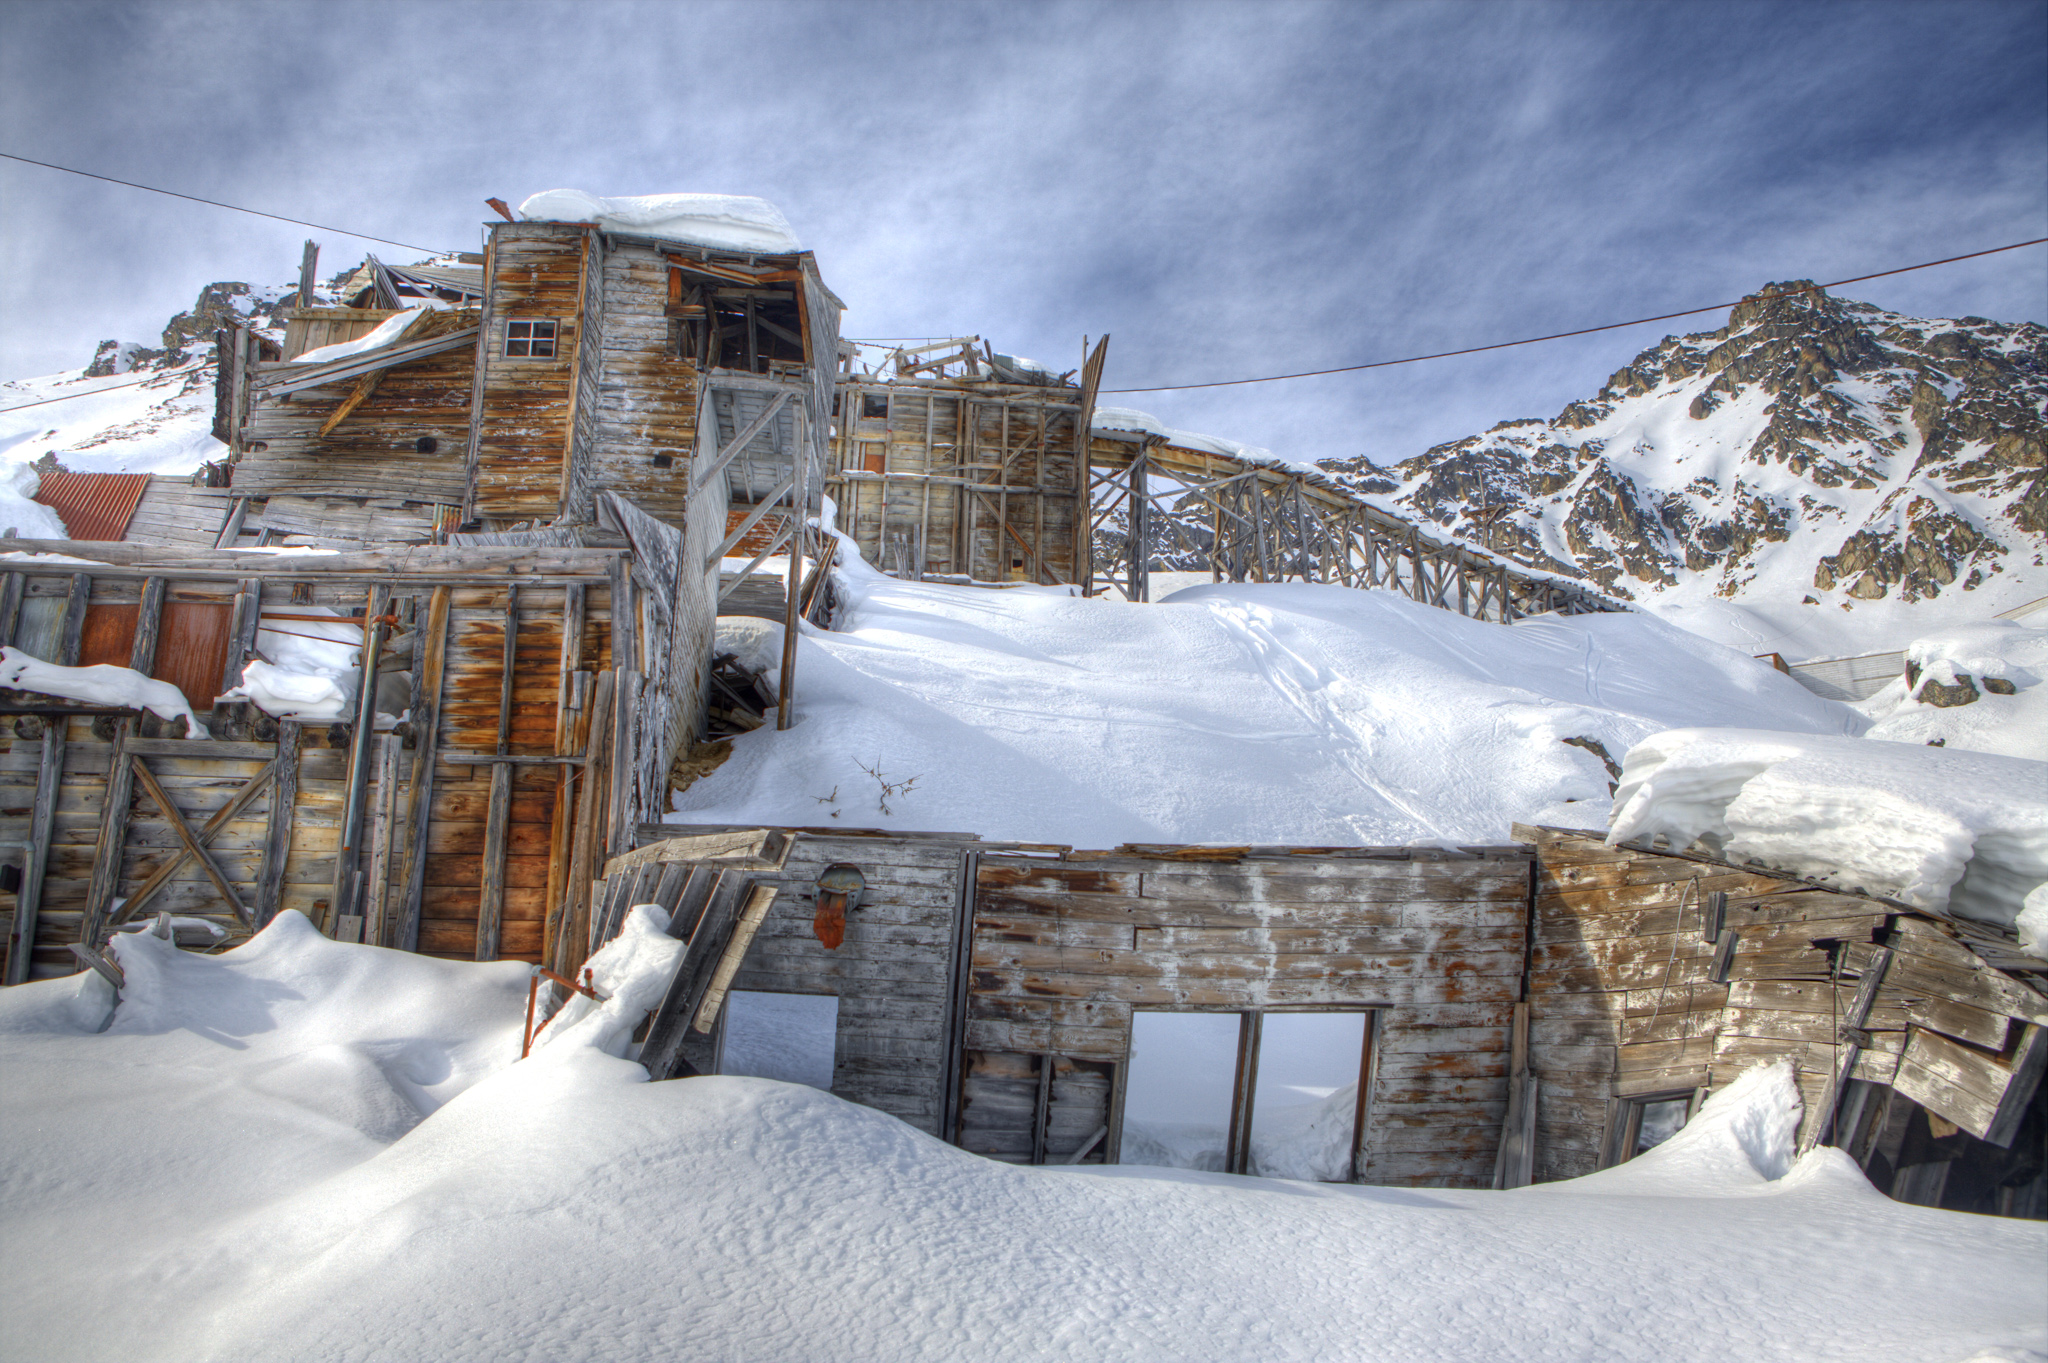 Hatcher Pass offers incredible views of whats left of the old mining operations.